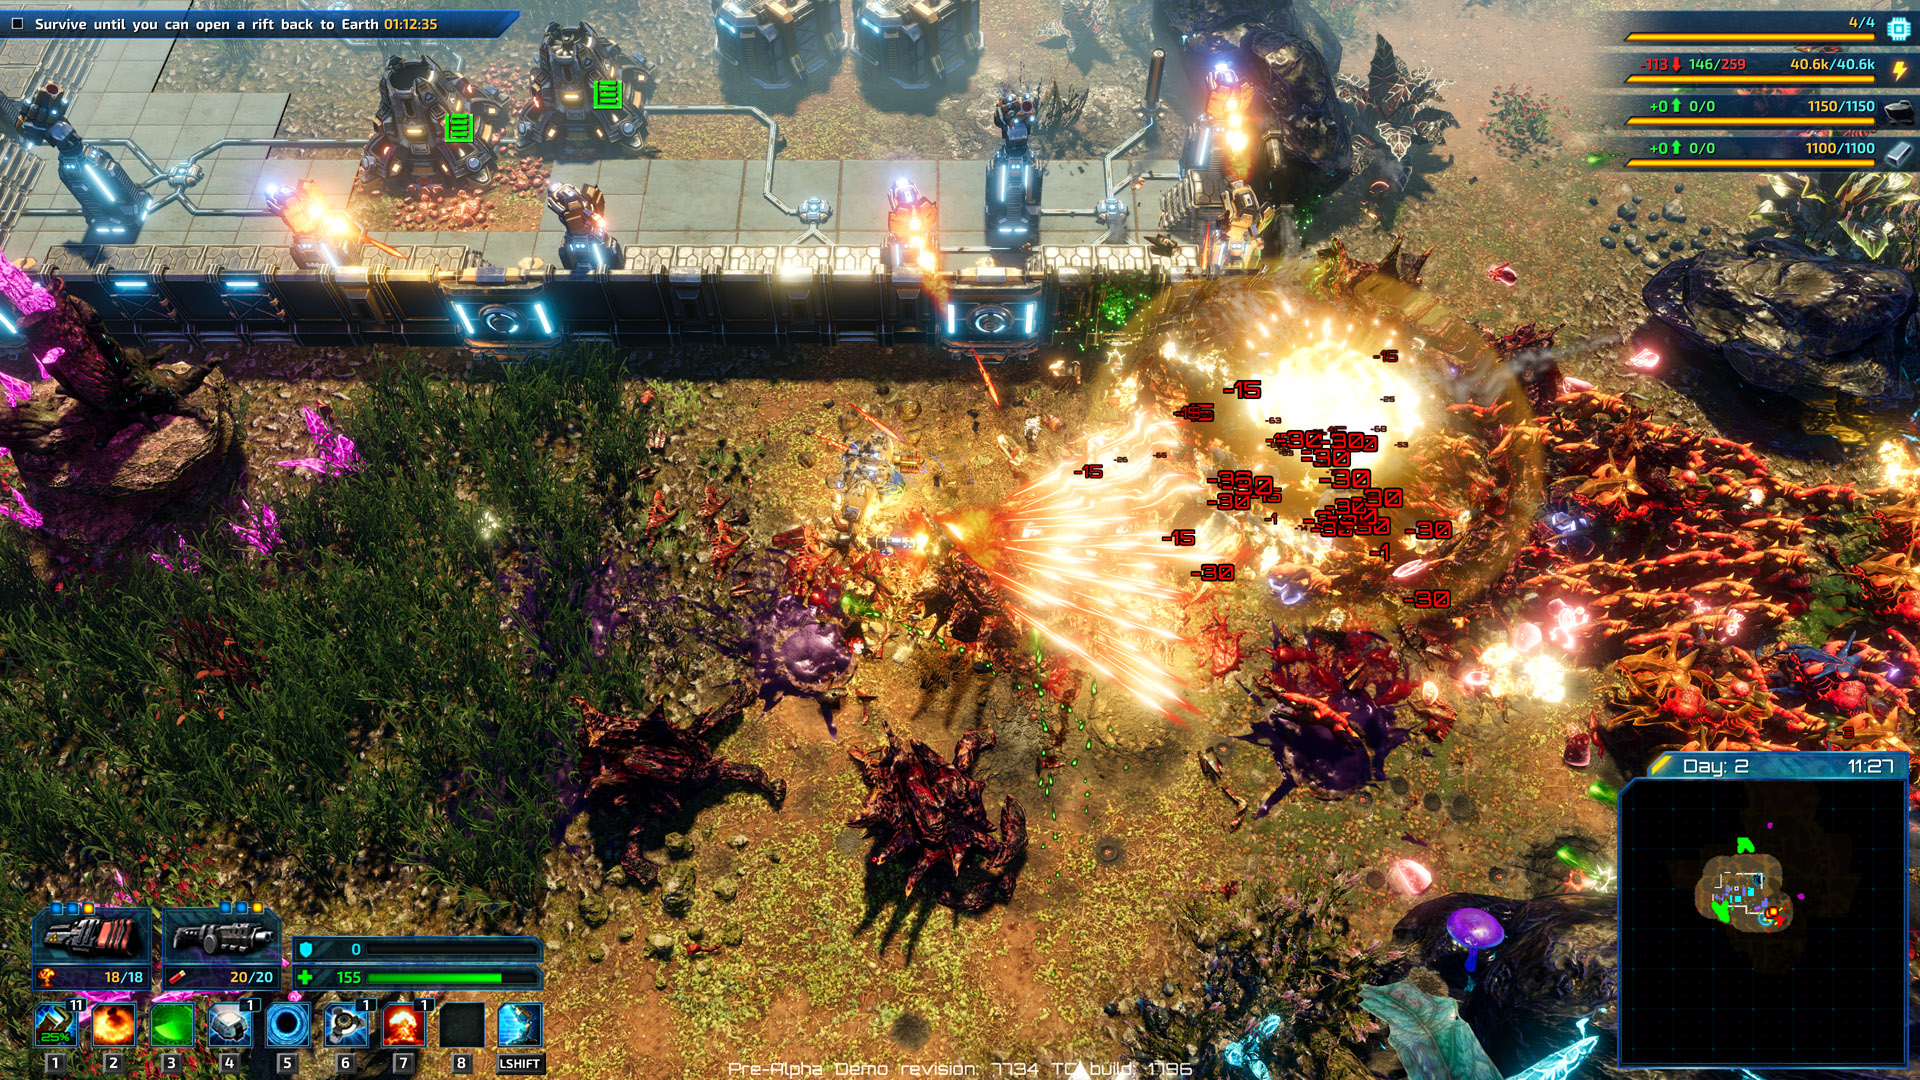 The Riftbreaker mashes together StarCraft, They Are Billions and Diablo, and it's a joy to play